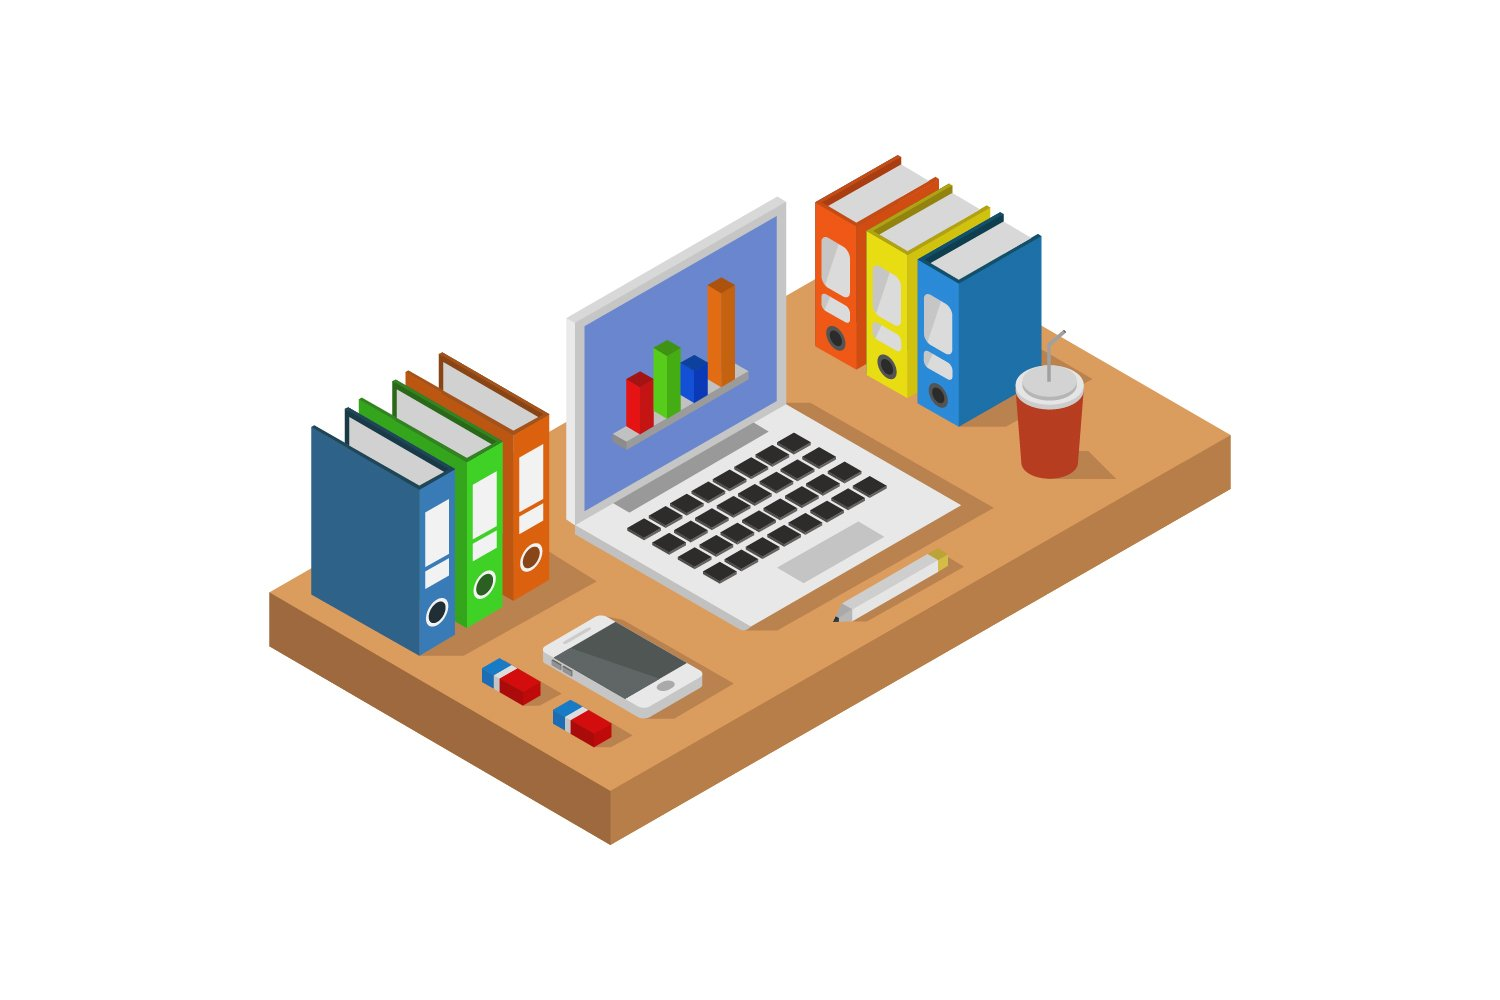 isometric office desk example image 1